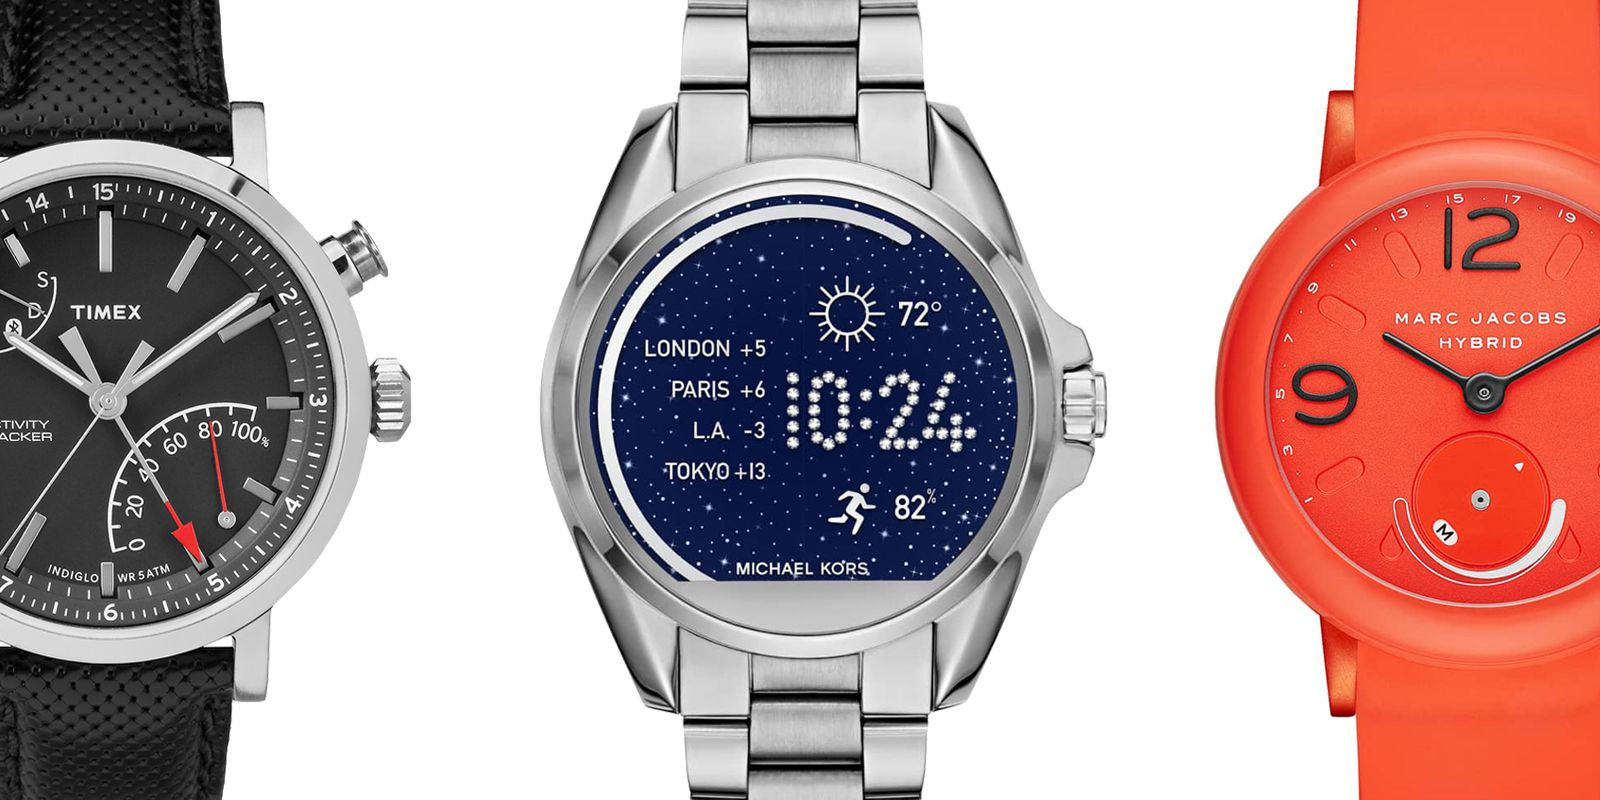 13 Genuinely Stylish Smartwatches to Buy This Fall